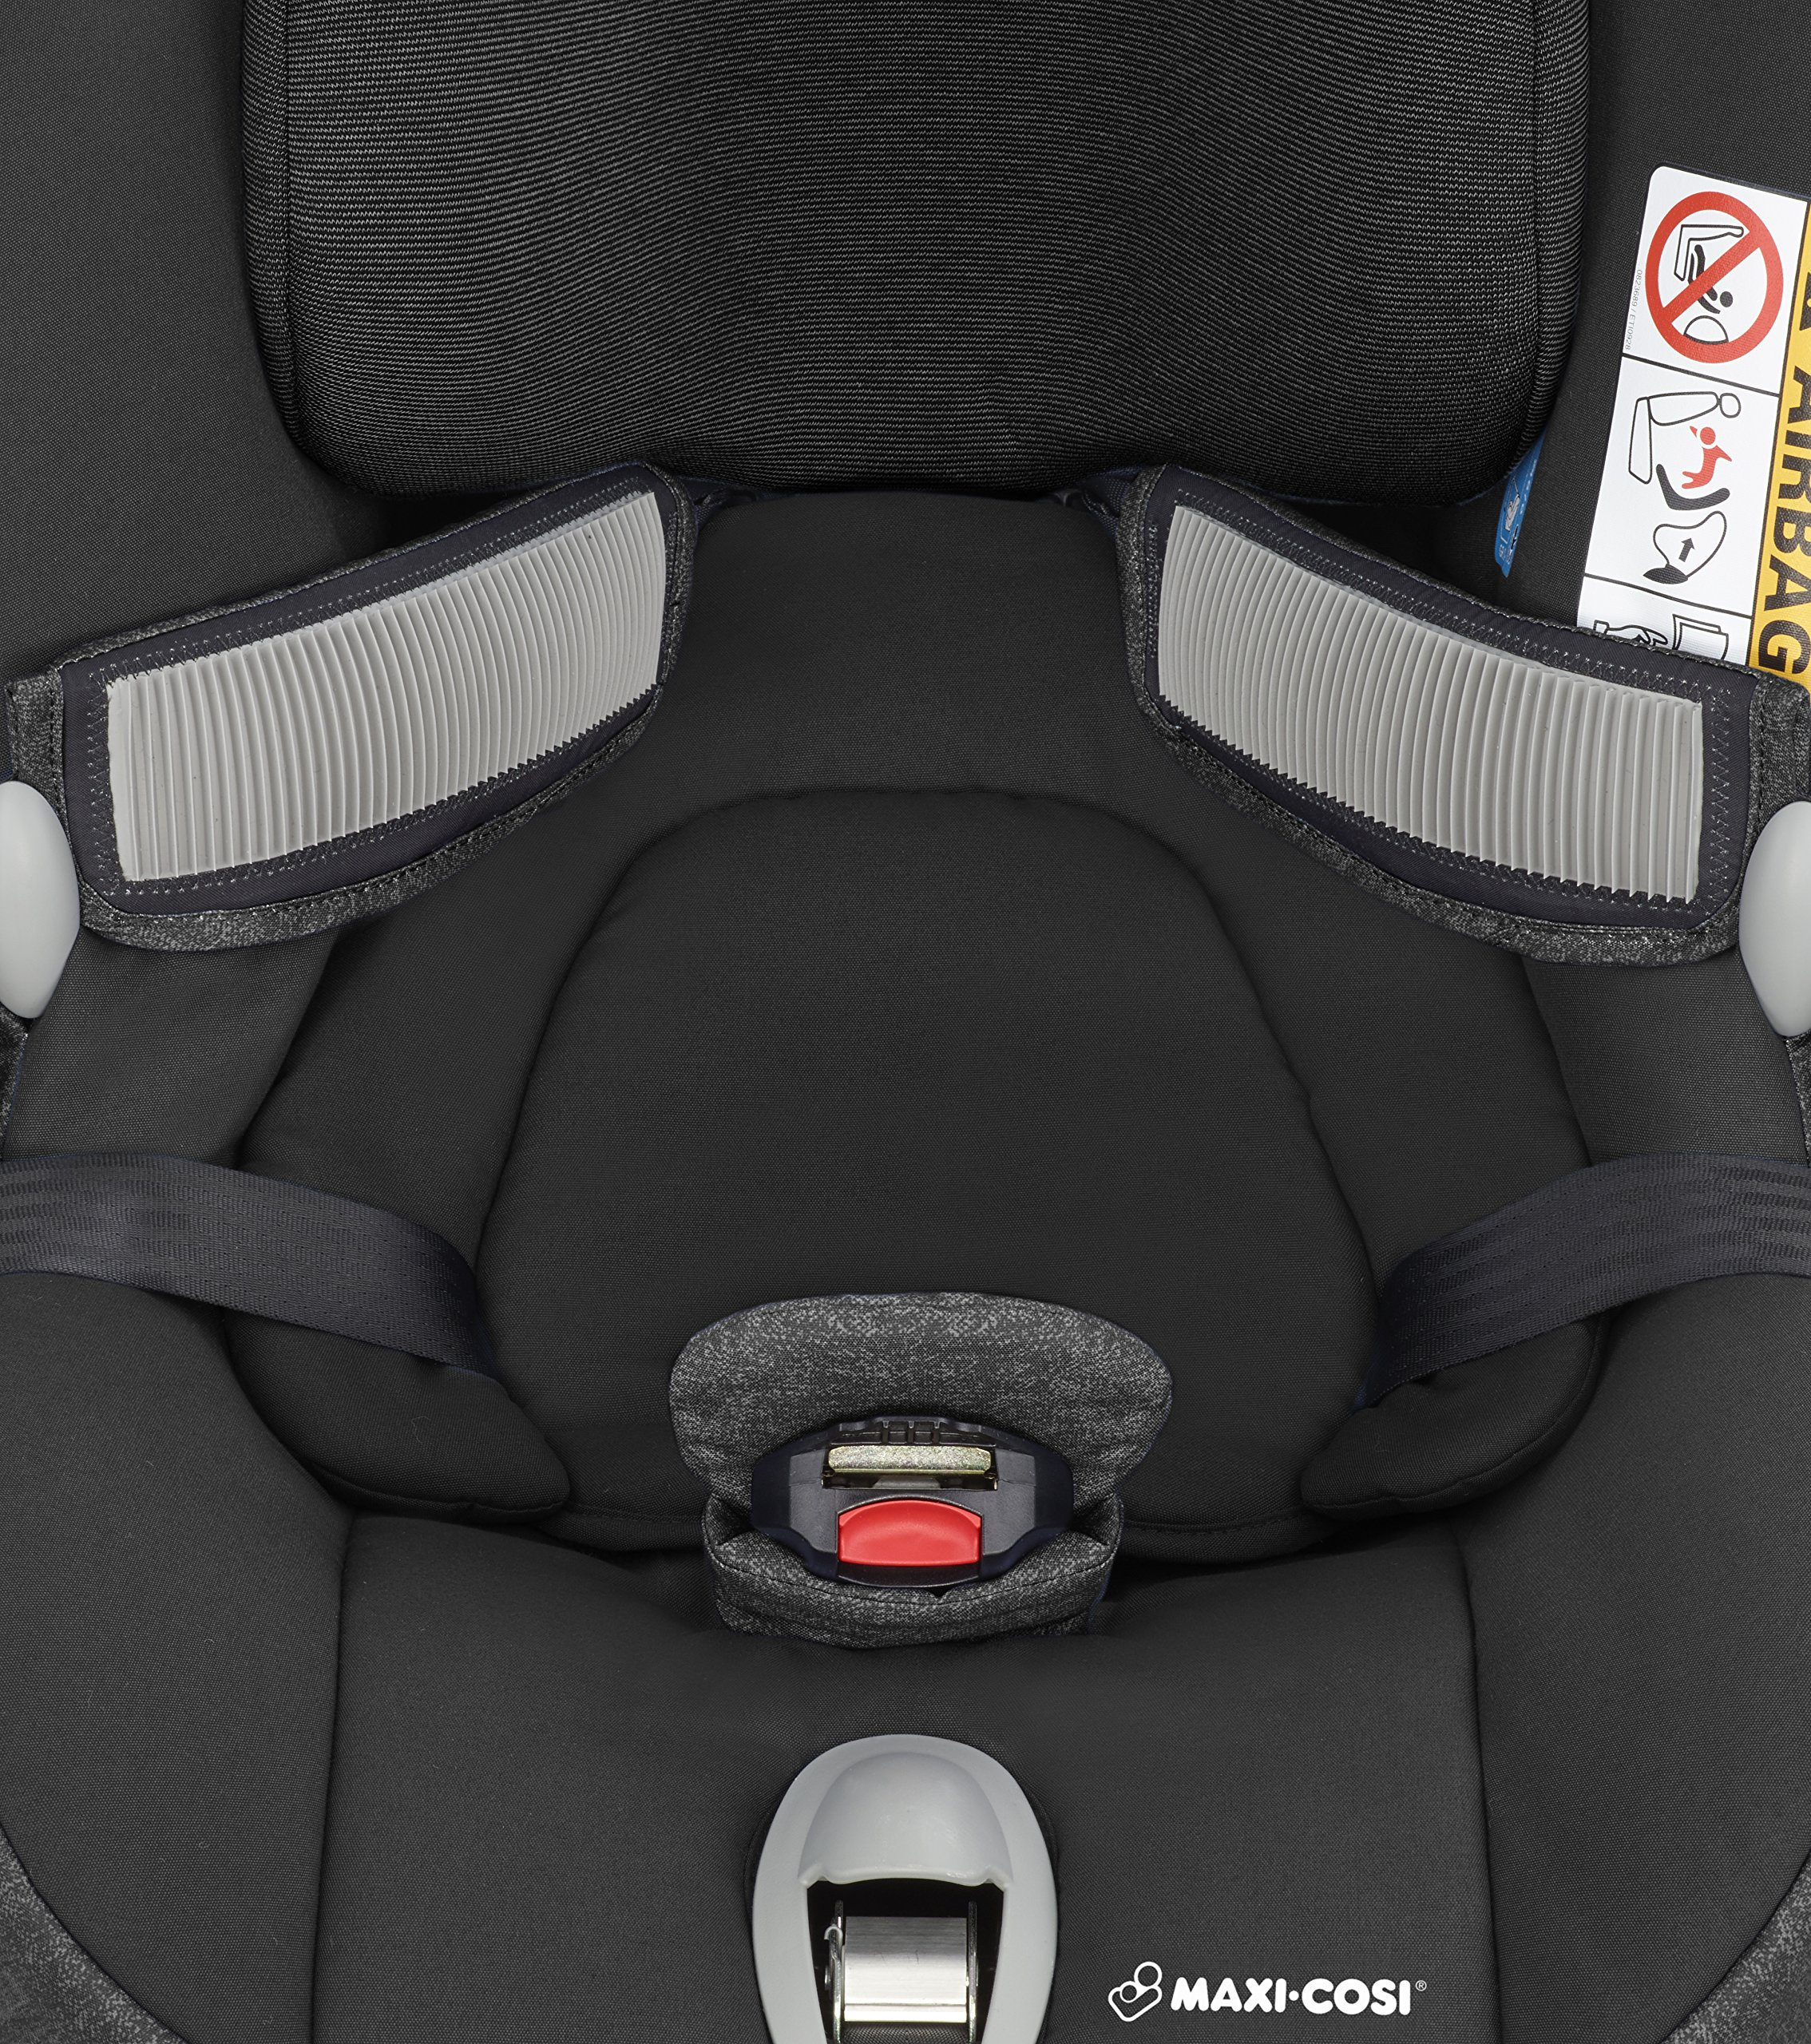 Maxi-Cosi MiloFix ISOFIX Combination Car Seat, Group 0+/1 car seat, Rear and Forward-facing, 0-4 years, 0-18 kg, Nomad Black Maxi-Cosi Rear and forward facing group 0+/1 car seat, suitable from birth to 18 kg (birth to 4 years) i-Size car seat, extended rearward-facing travel up until 18 months Padded seat and angled base provide additional leg room in rear-facing position 6